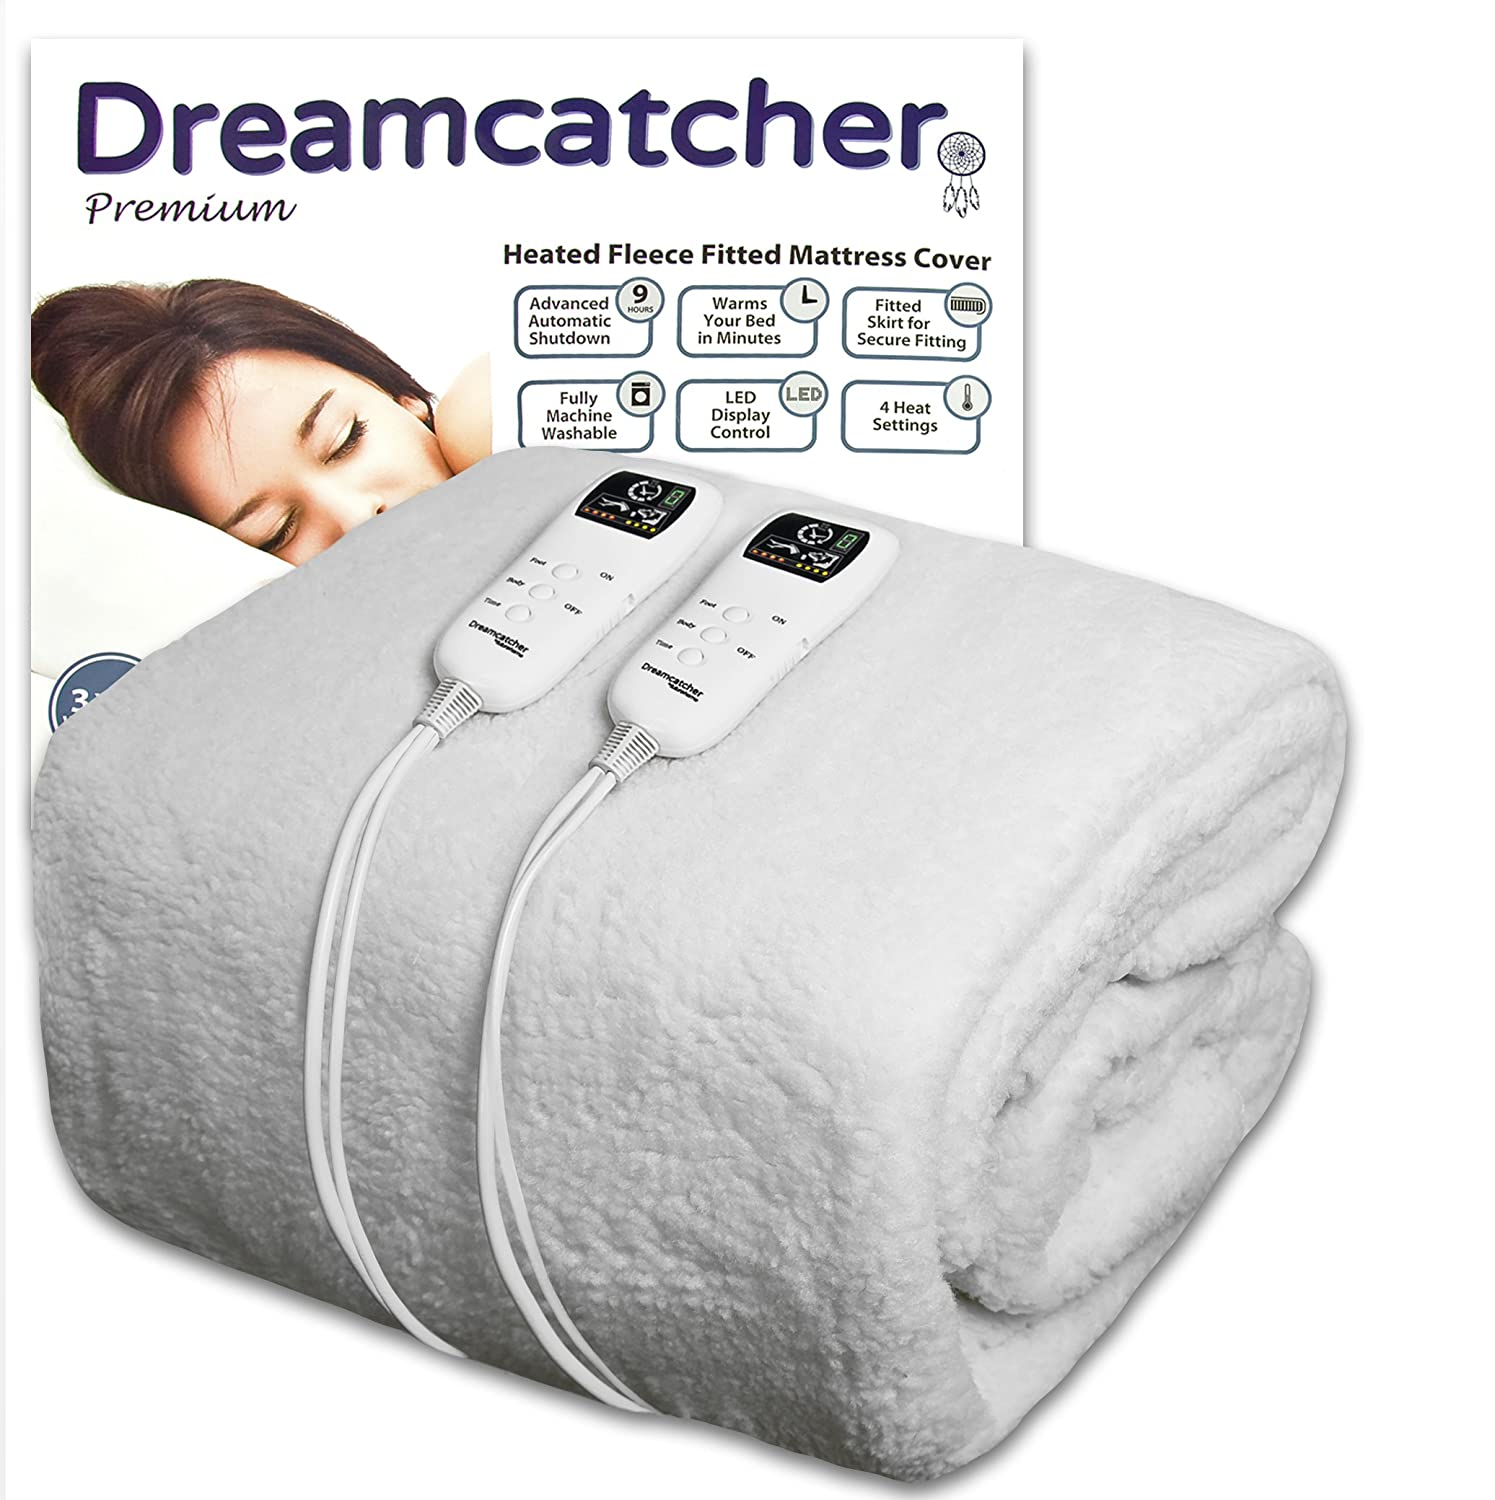 Dreamcatcher Electric Blanket Double Premium Polar Fleece, Double Bed, Electric Heated Blanket, Soft Fitted Underblanket with Dual LED Controllers, 8 Comfort settings, Timer Function